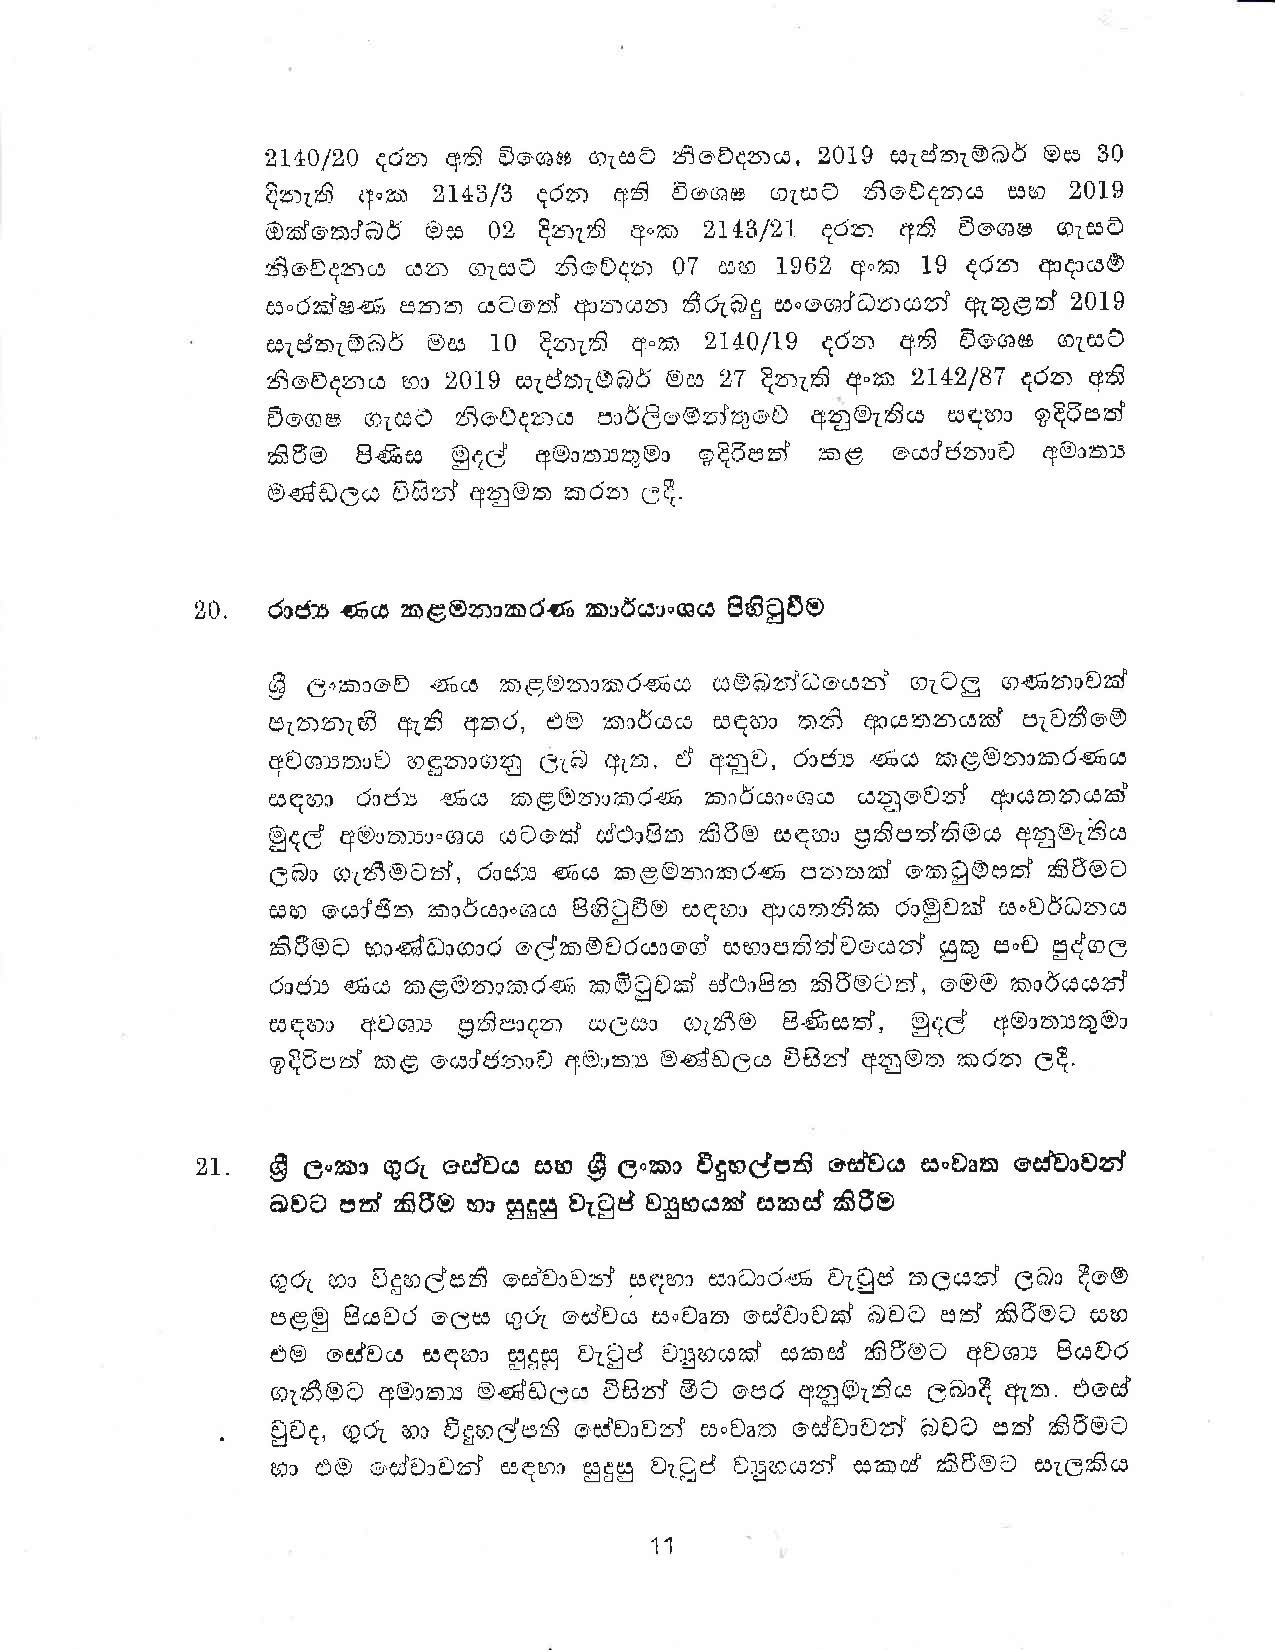 Cabinet Decision on 15.10.2019 page 011